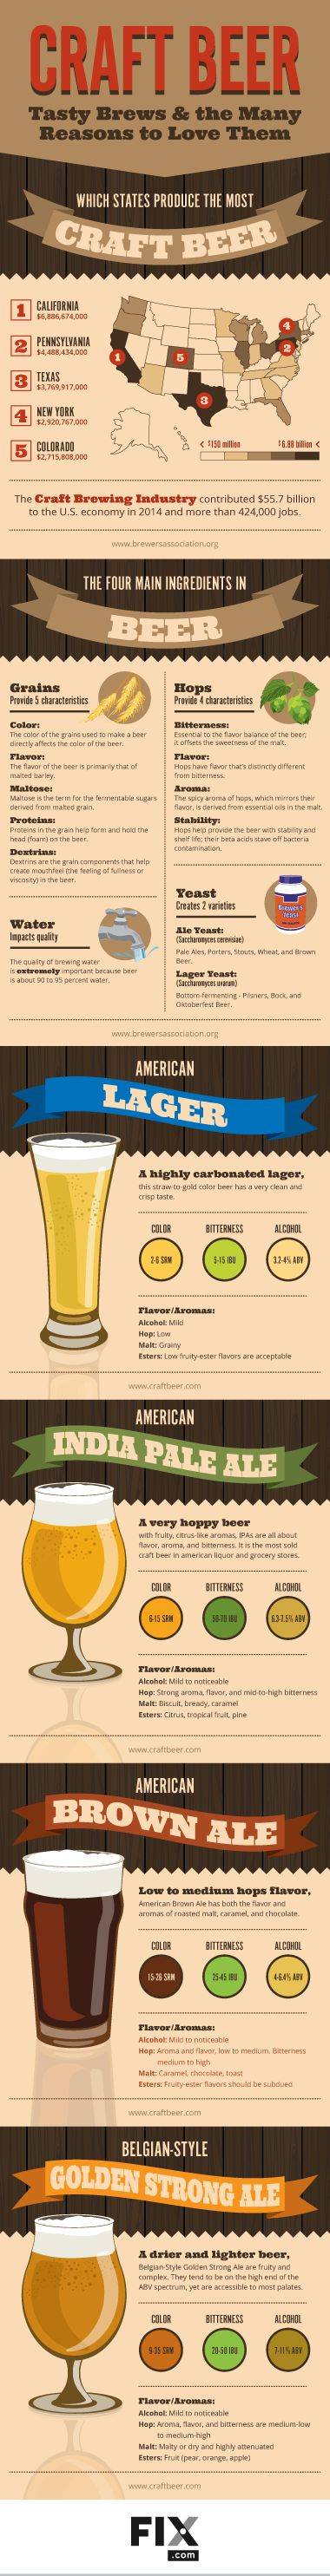 The craft beer industry is taking America by storm! Learn the science behind these domestic brews and explore the flavor profiles of everyone's favorite hoppy treat!